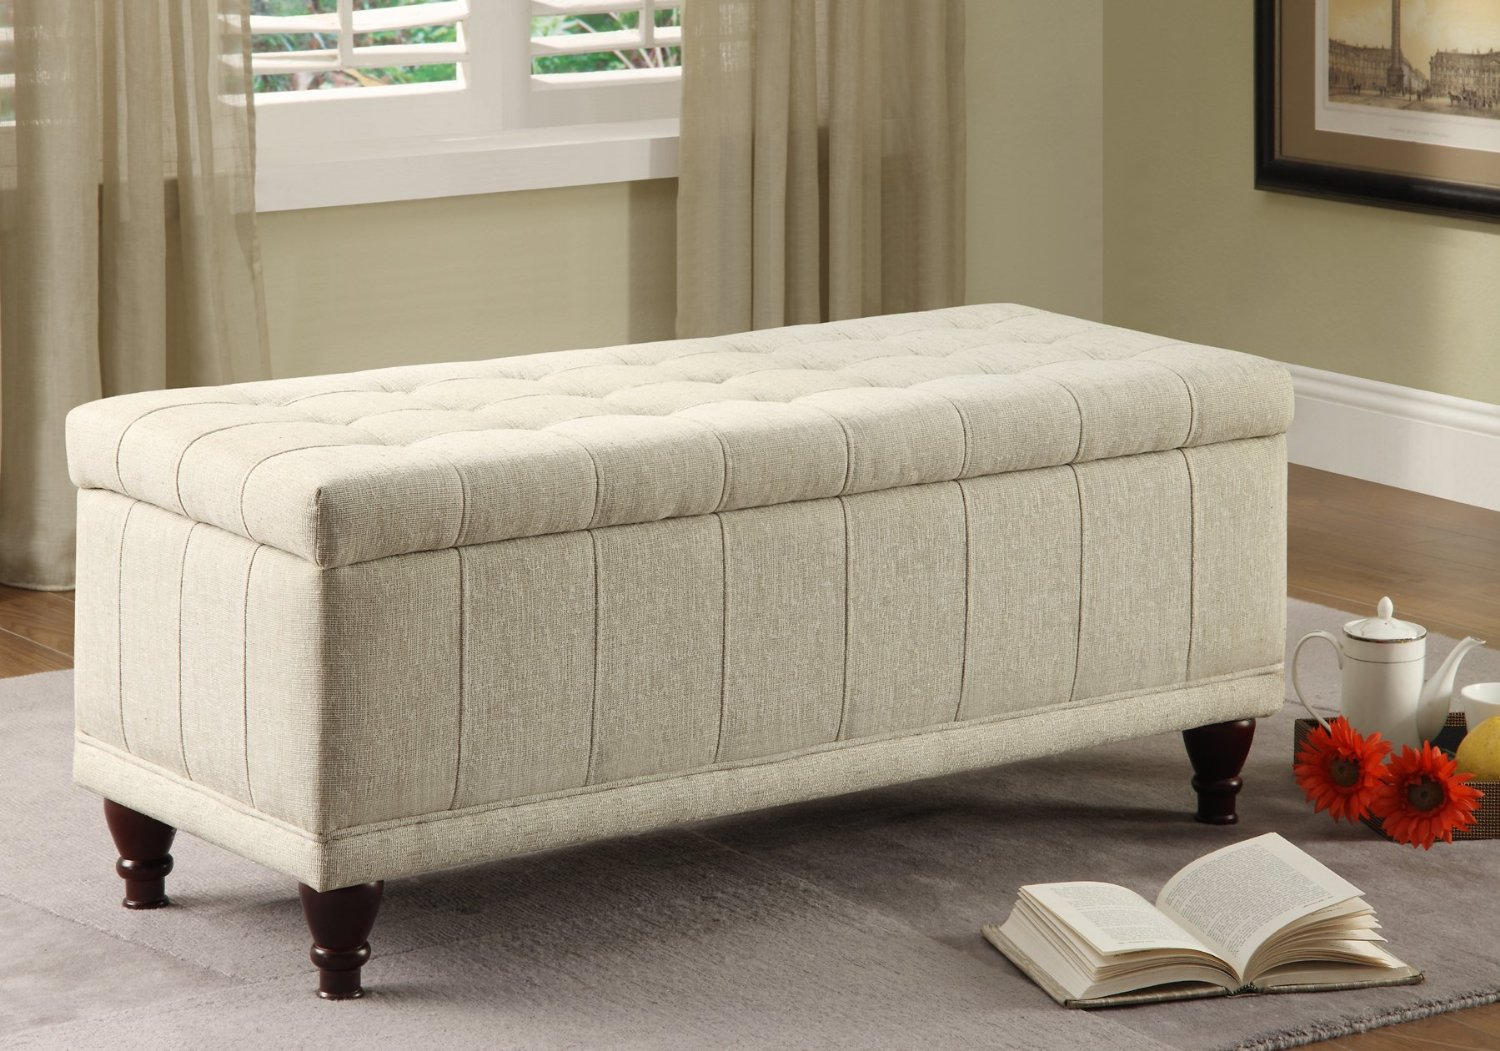 bedroom storage bench seat 14173 | 81cjoeza2fl sl1500